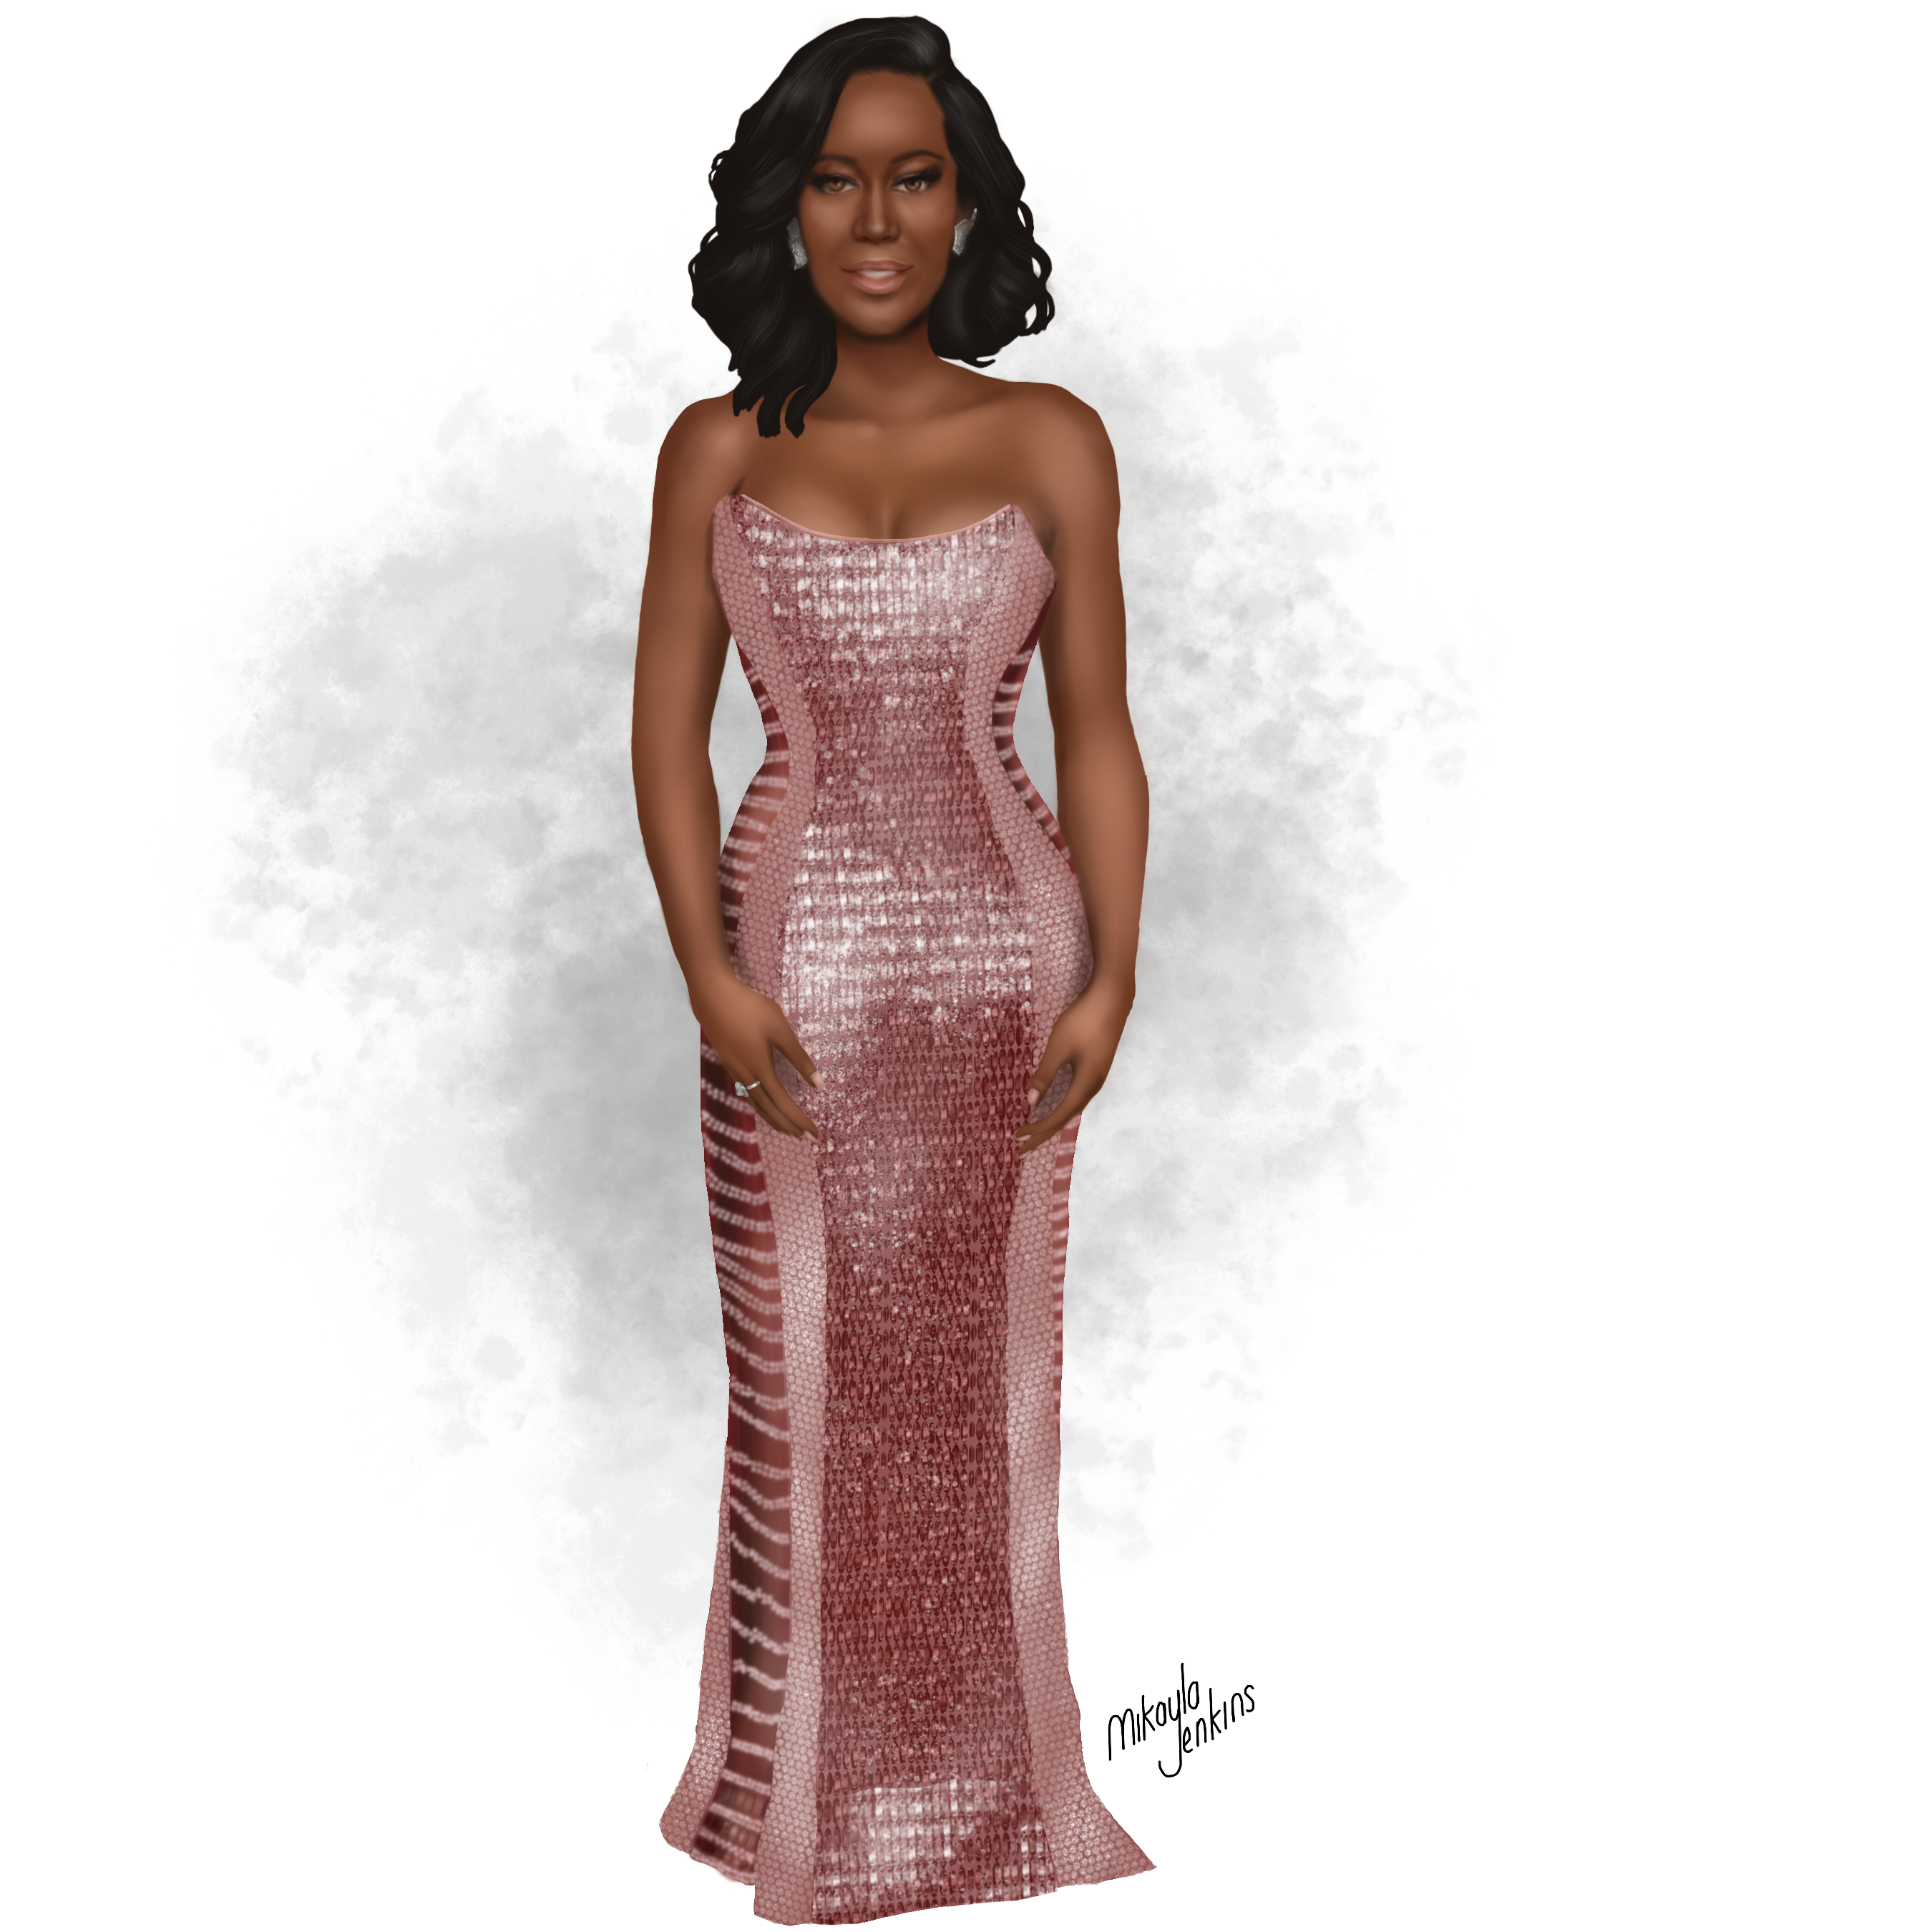 Regina King - Golden Globes 2019 - Sublime Cravings Illustration